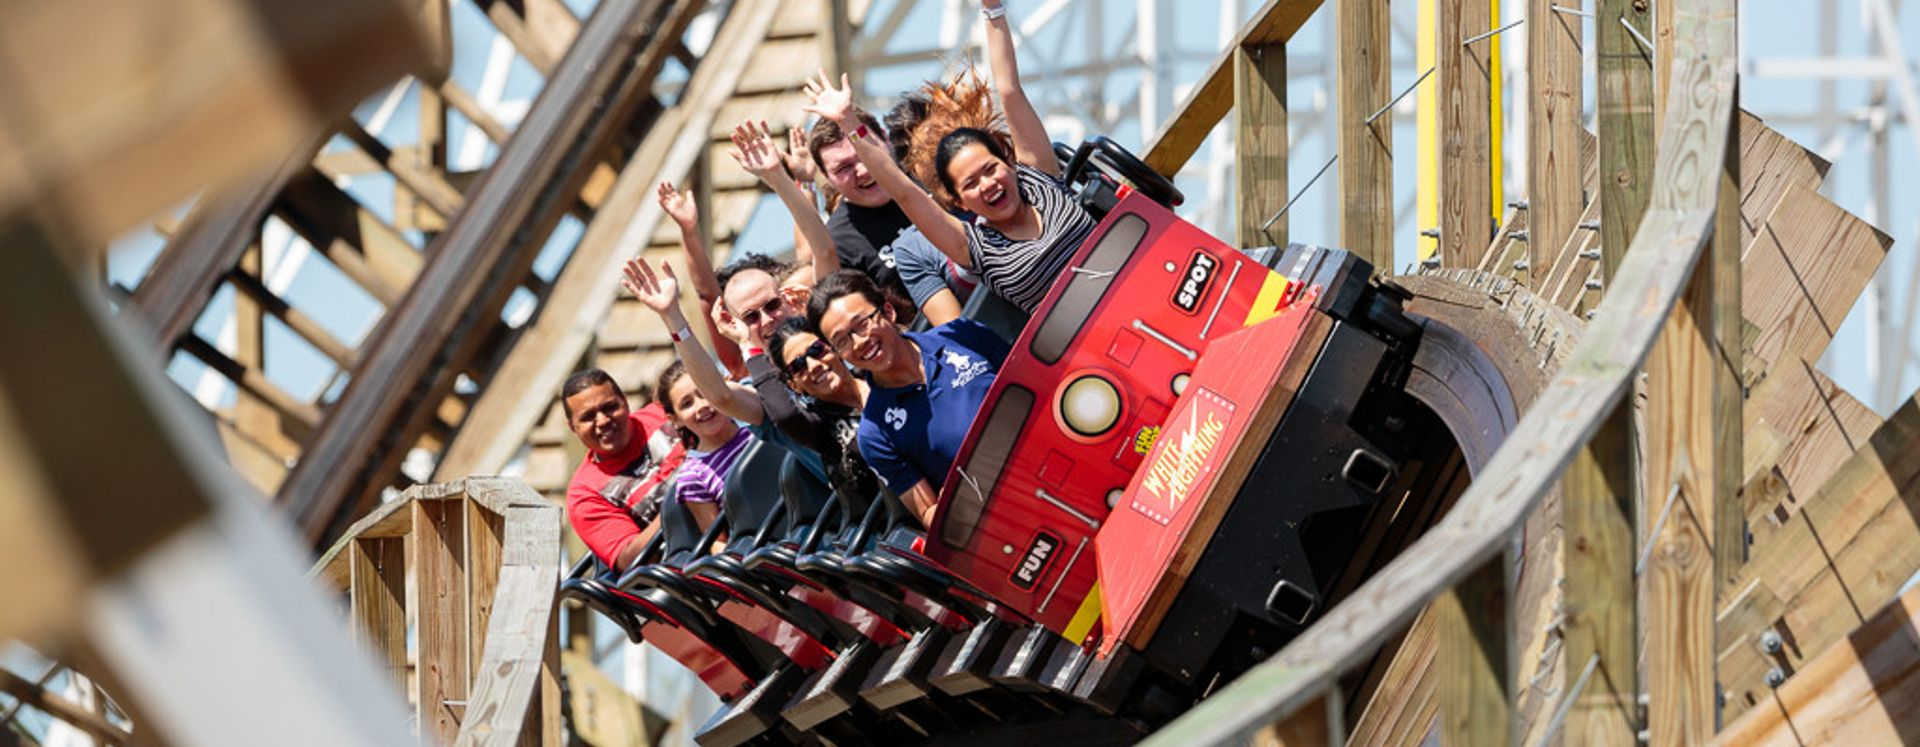 Roller coaster with people laughing at Fun Spot Orlando